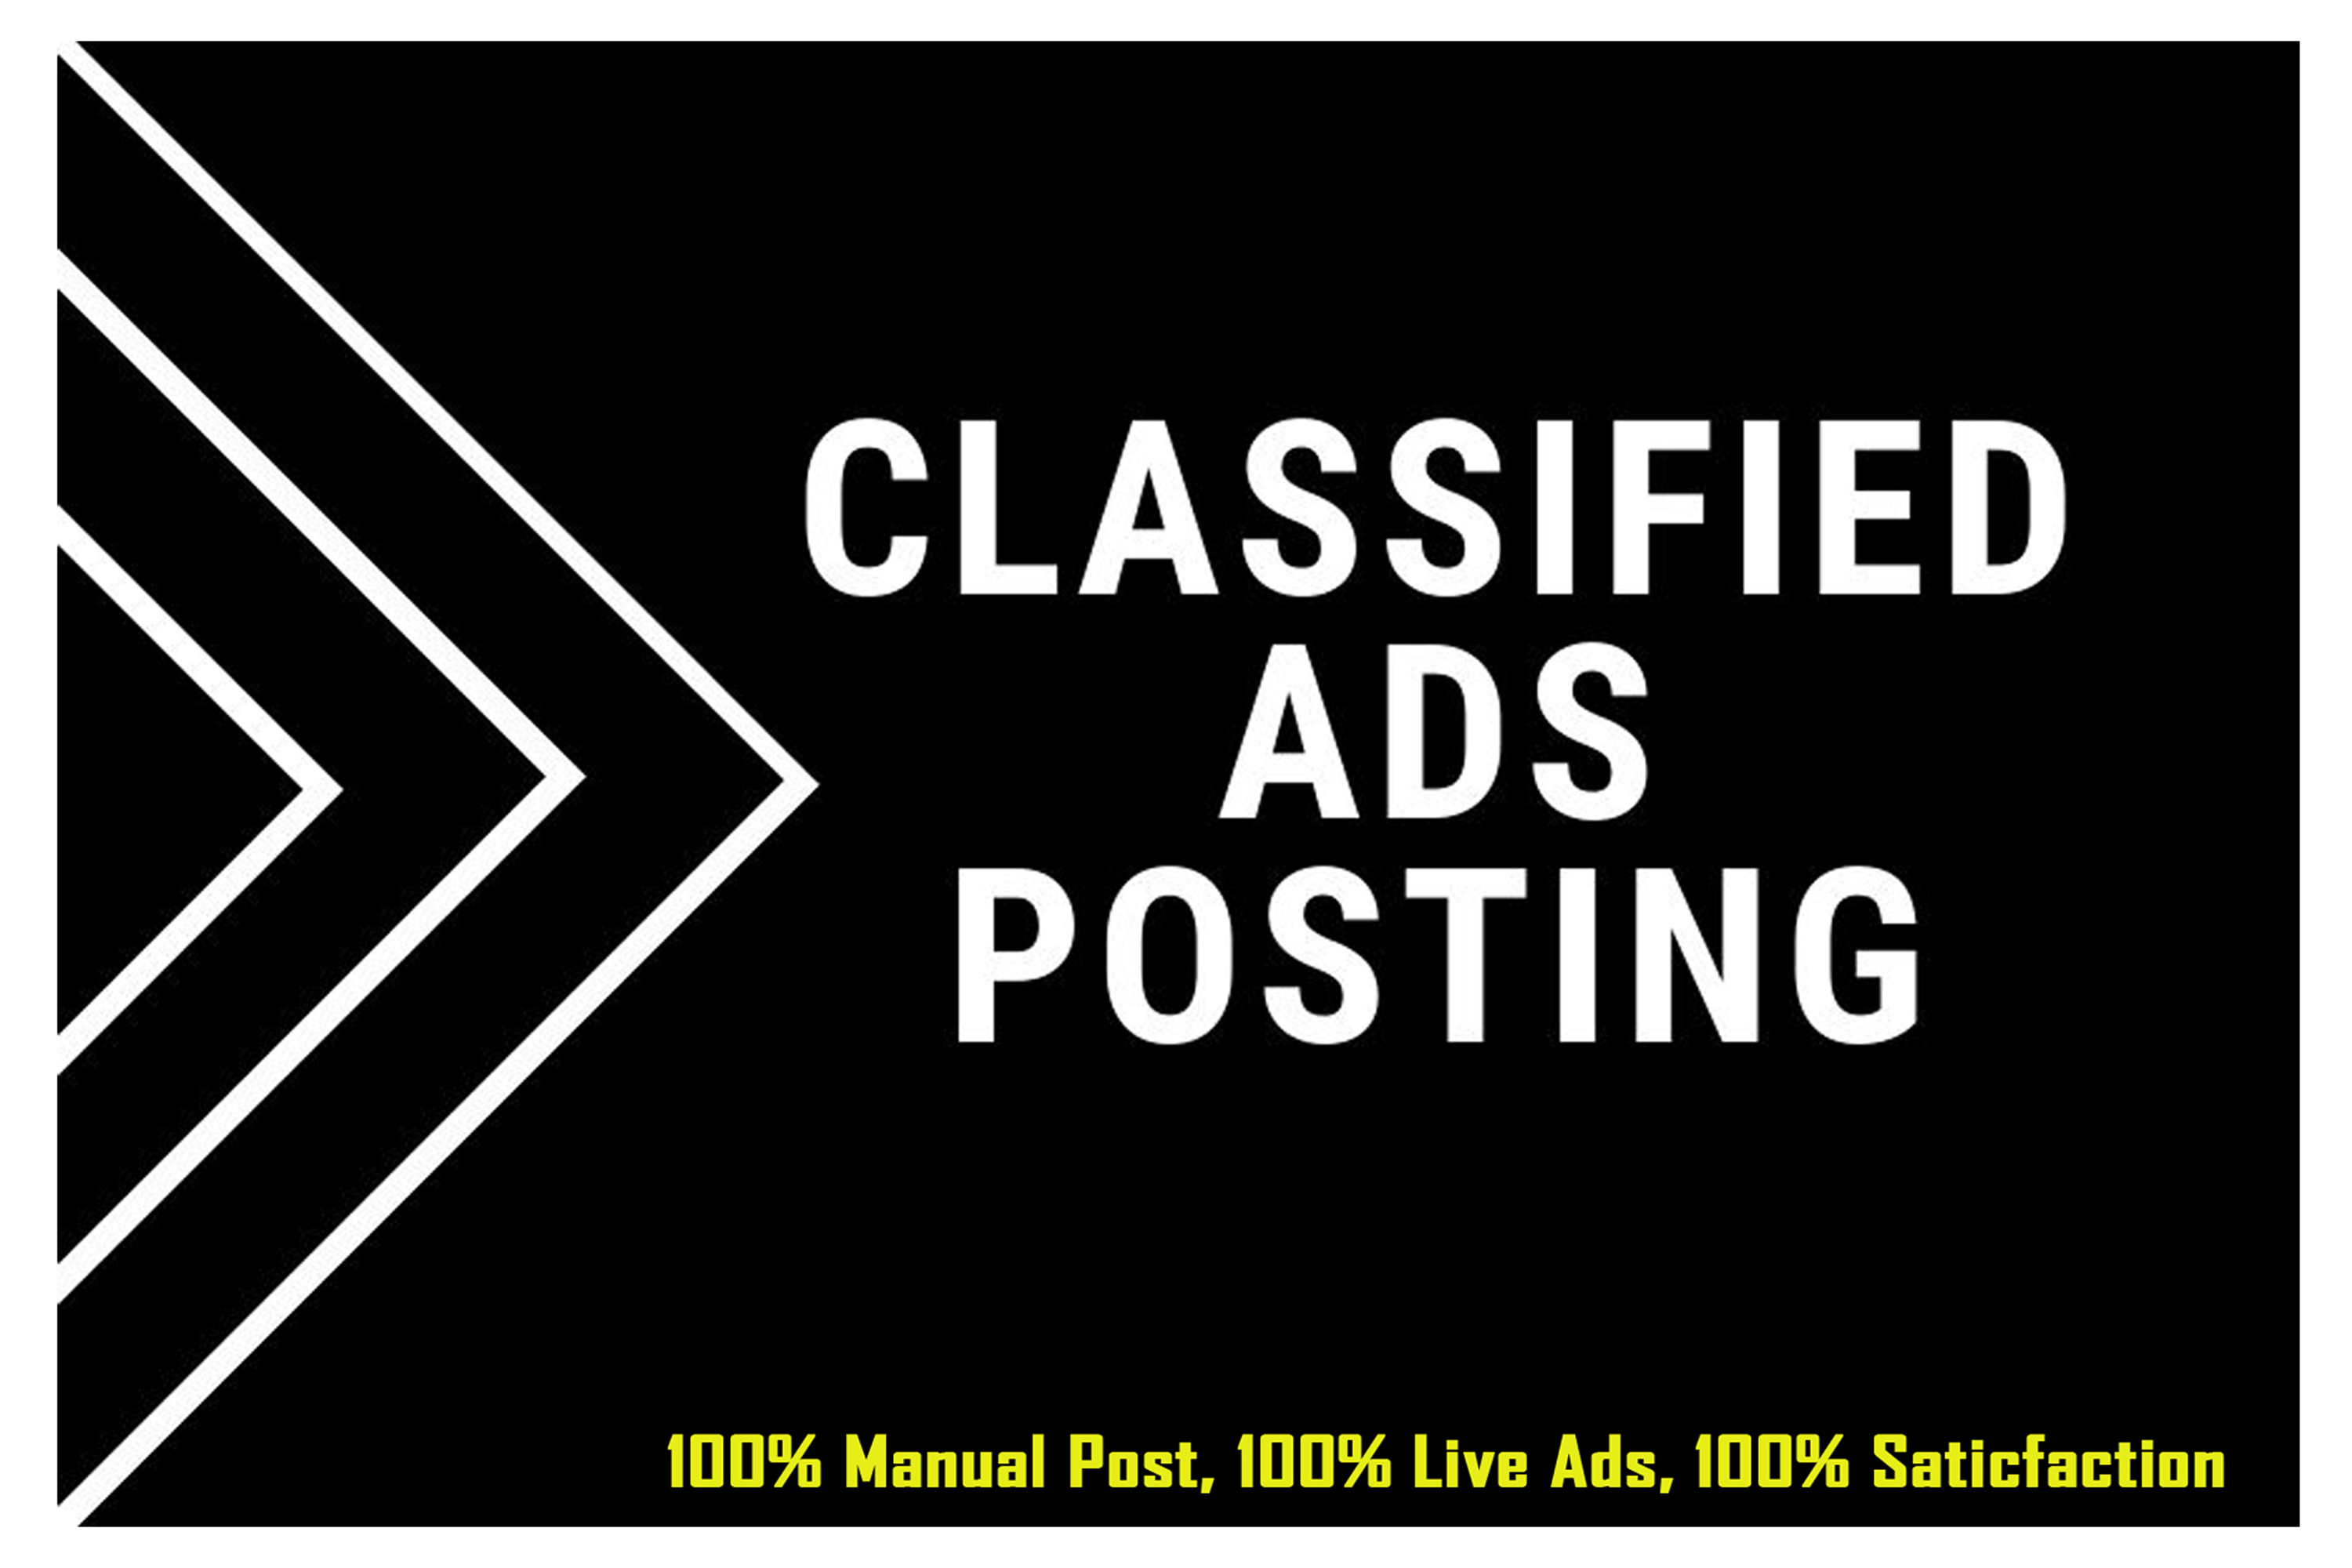 I Will Post Your Ads On 100 Classified Ad Posting Sites In The USA/UK/CANADA/AUSTRALIA